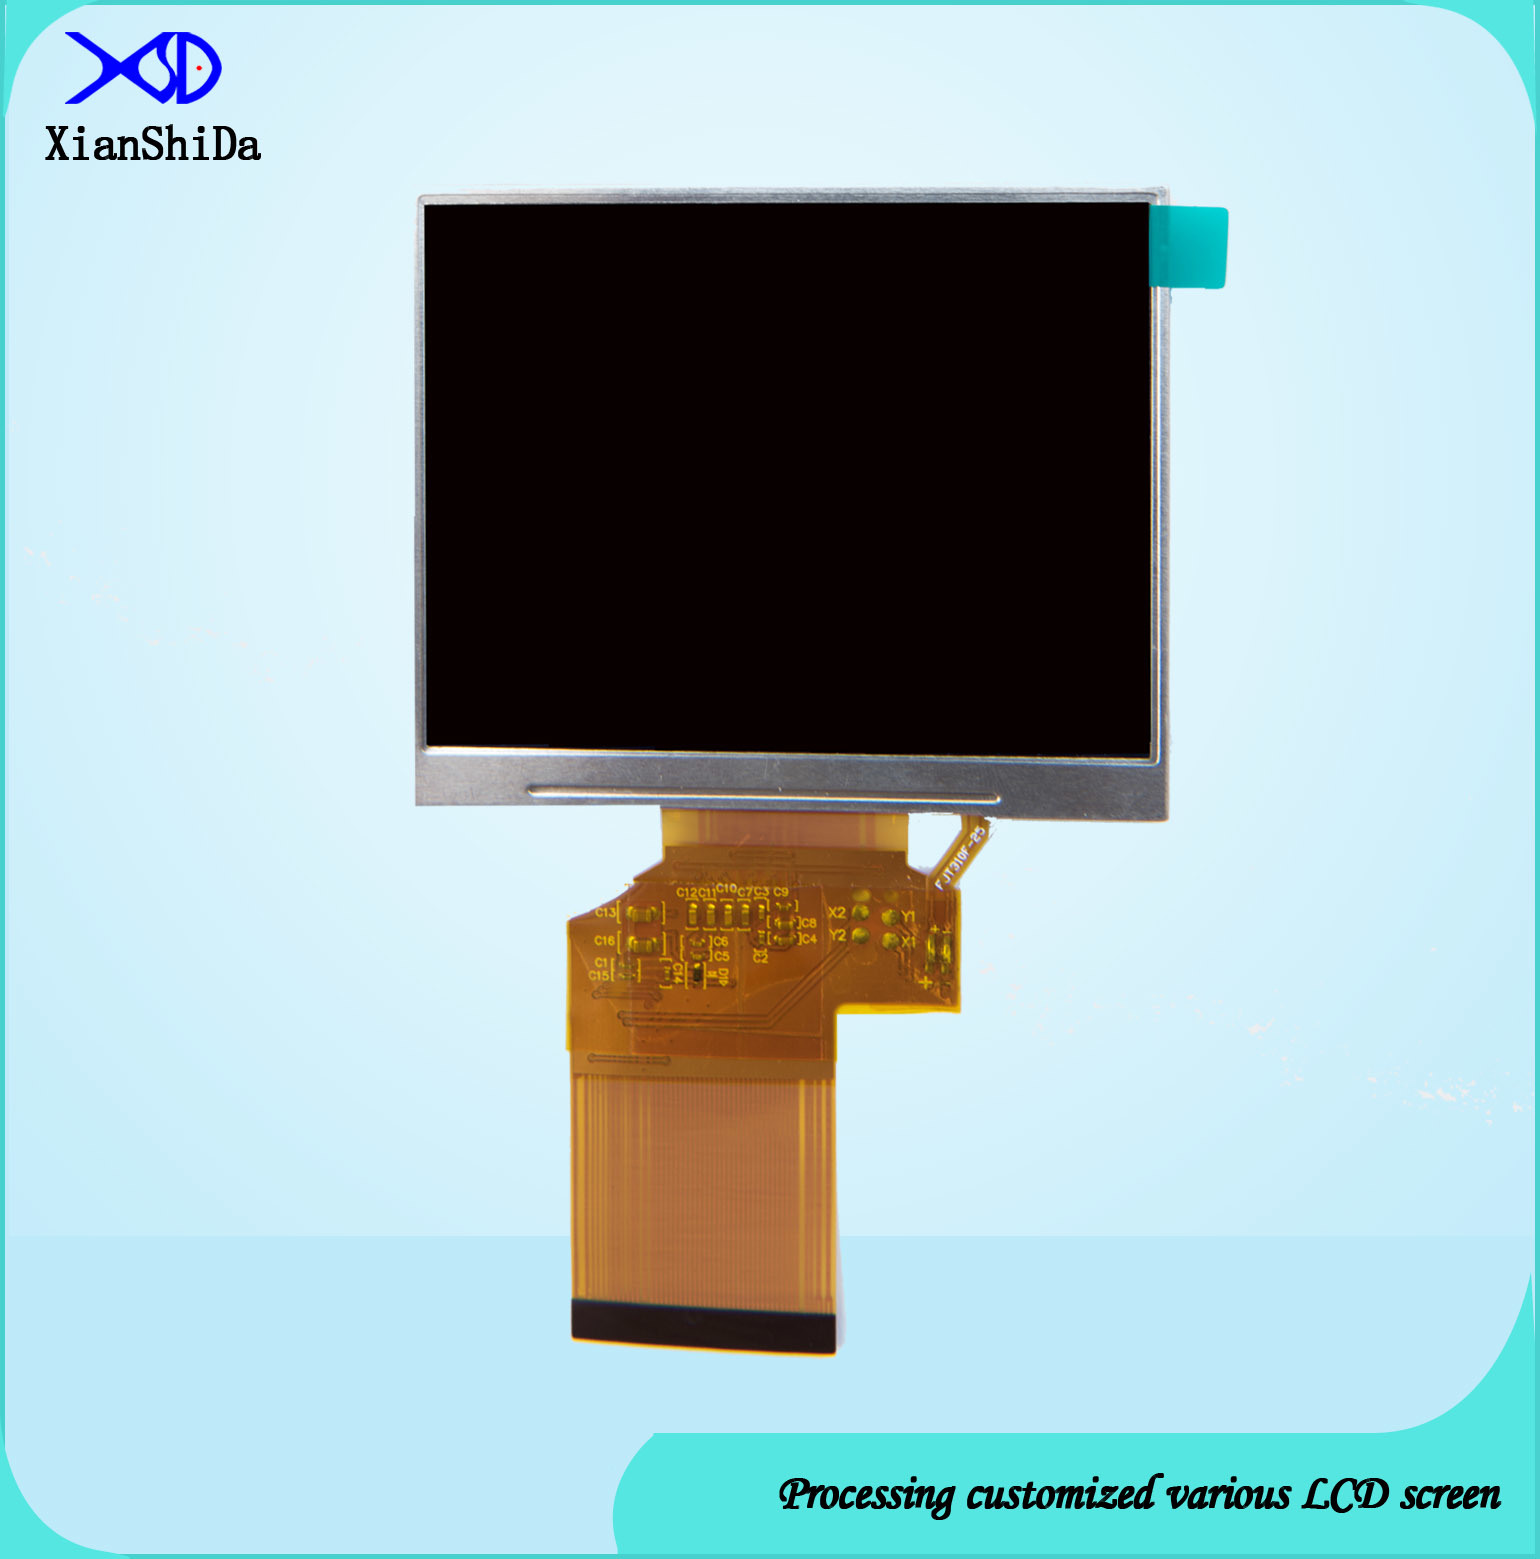 3.5 Inch LCD Screen 780CD/M2 High Luminance TFT LCD Display Module with 24 Bit RGB Interface